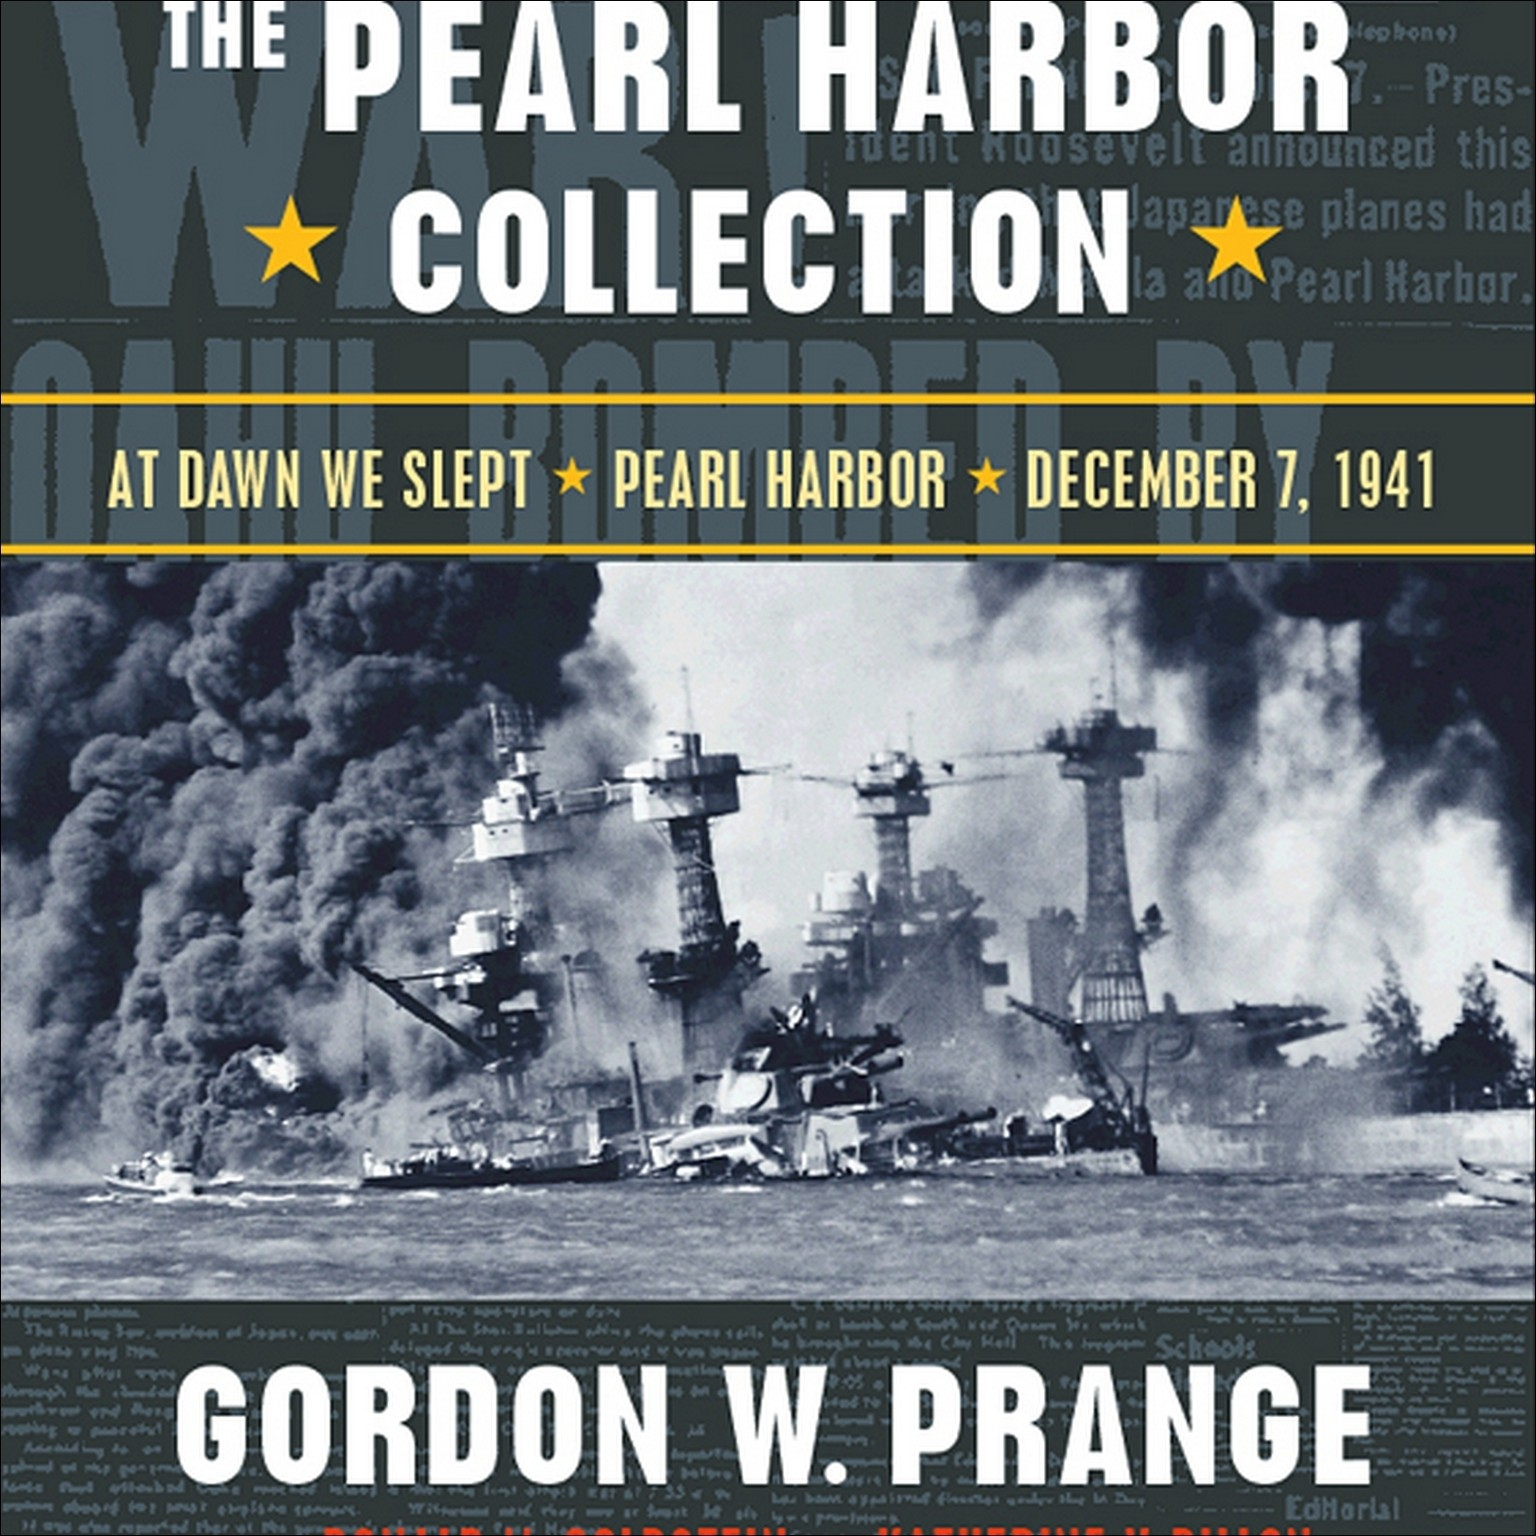 Printable The Pearl Harbor Collection: At Dawn We Slept; Pearl Harbor: The Verdict of History; Dec. 7, 1941 Audiobook Cover Art